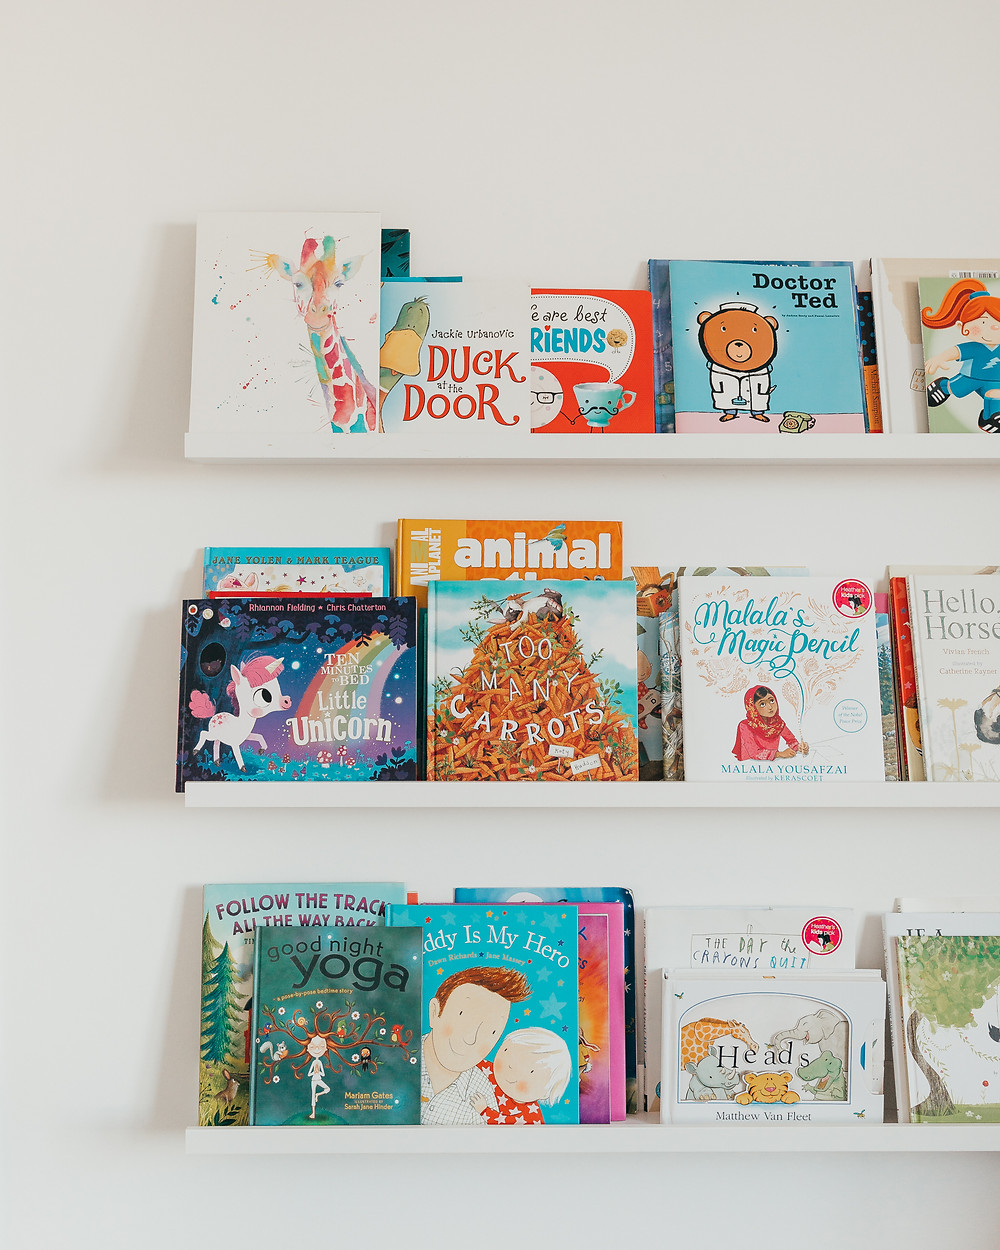 A white wall of white shelves lined with some colourful children's books.